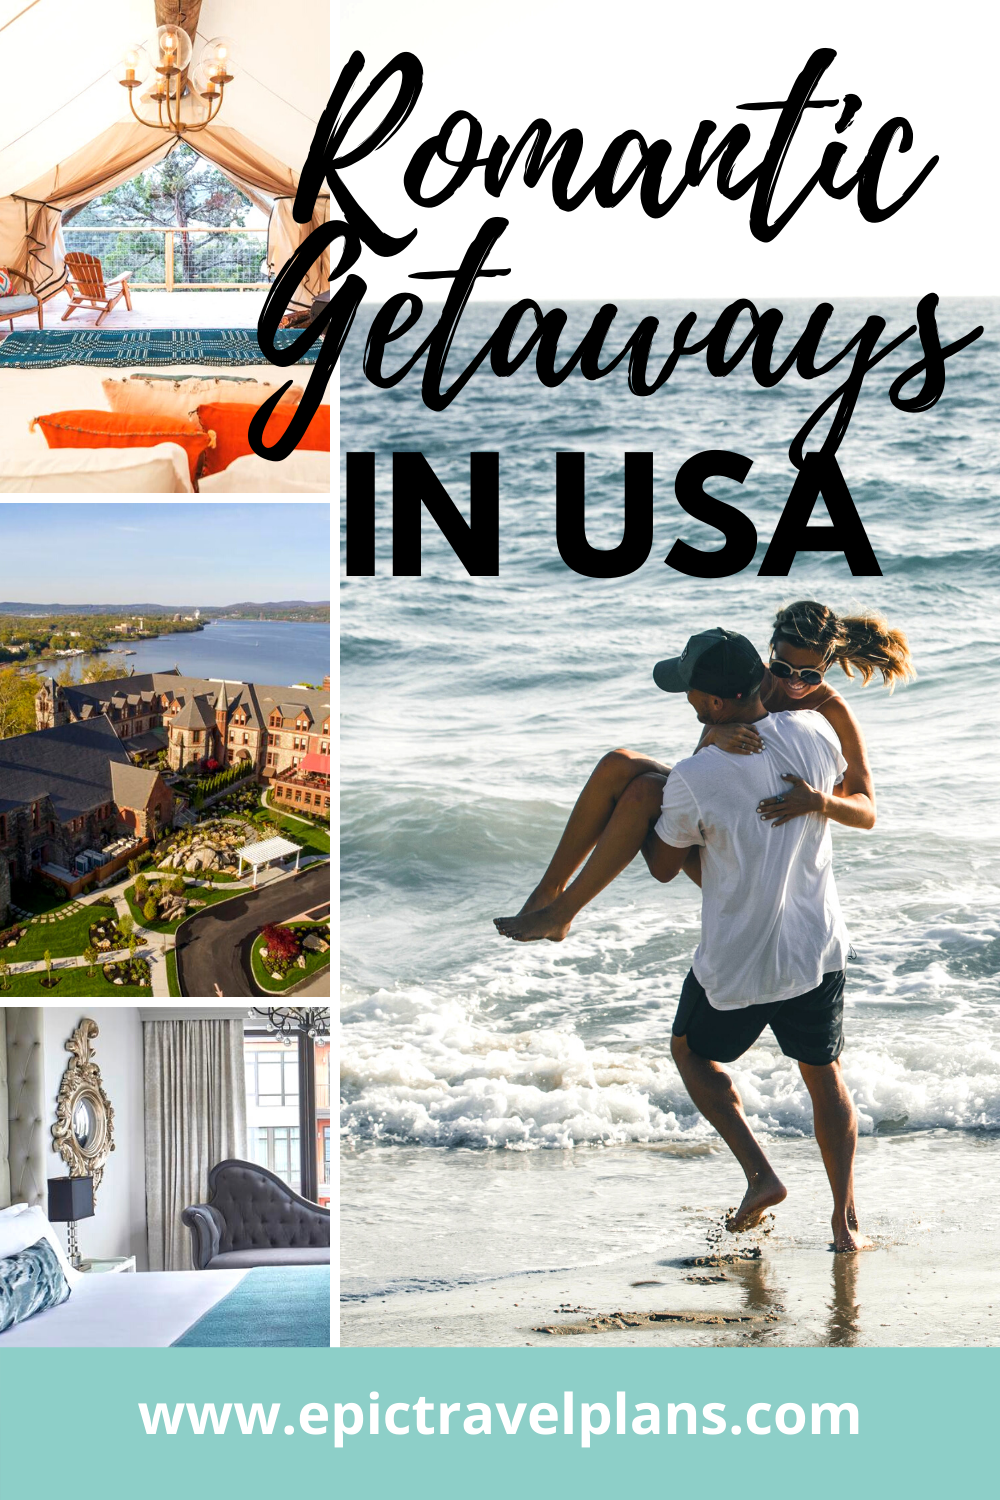 Best hotels for romantic getaways in USA